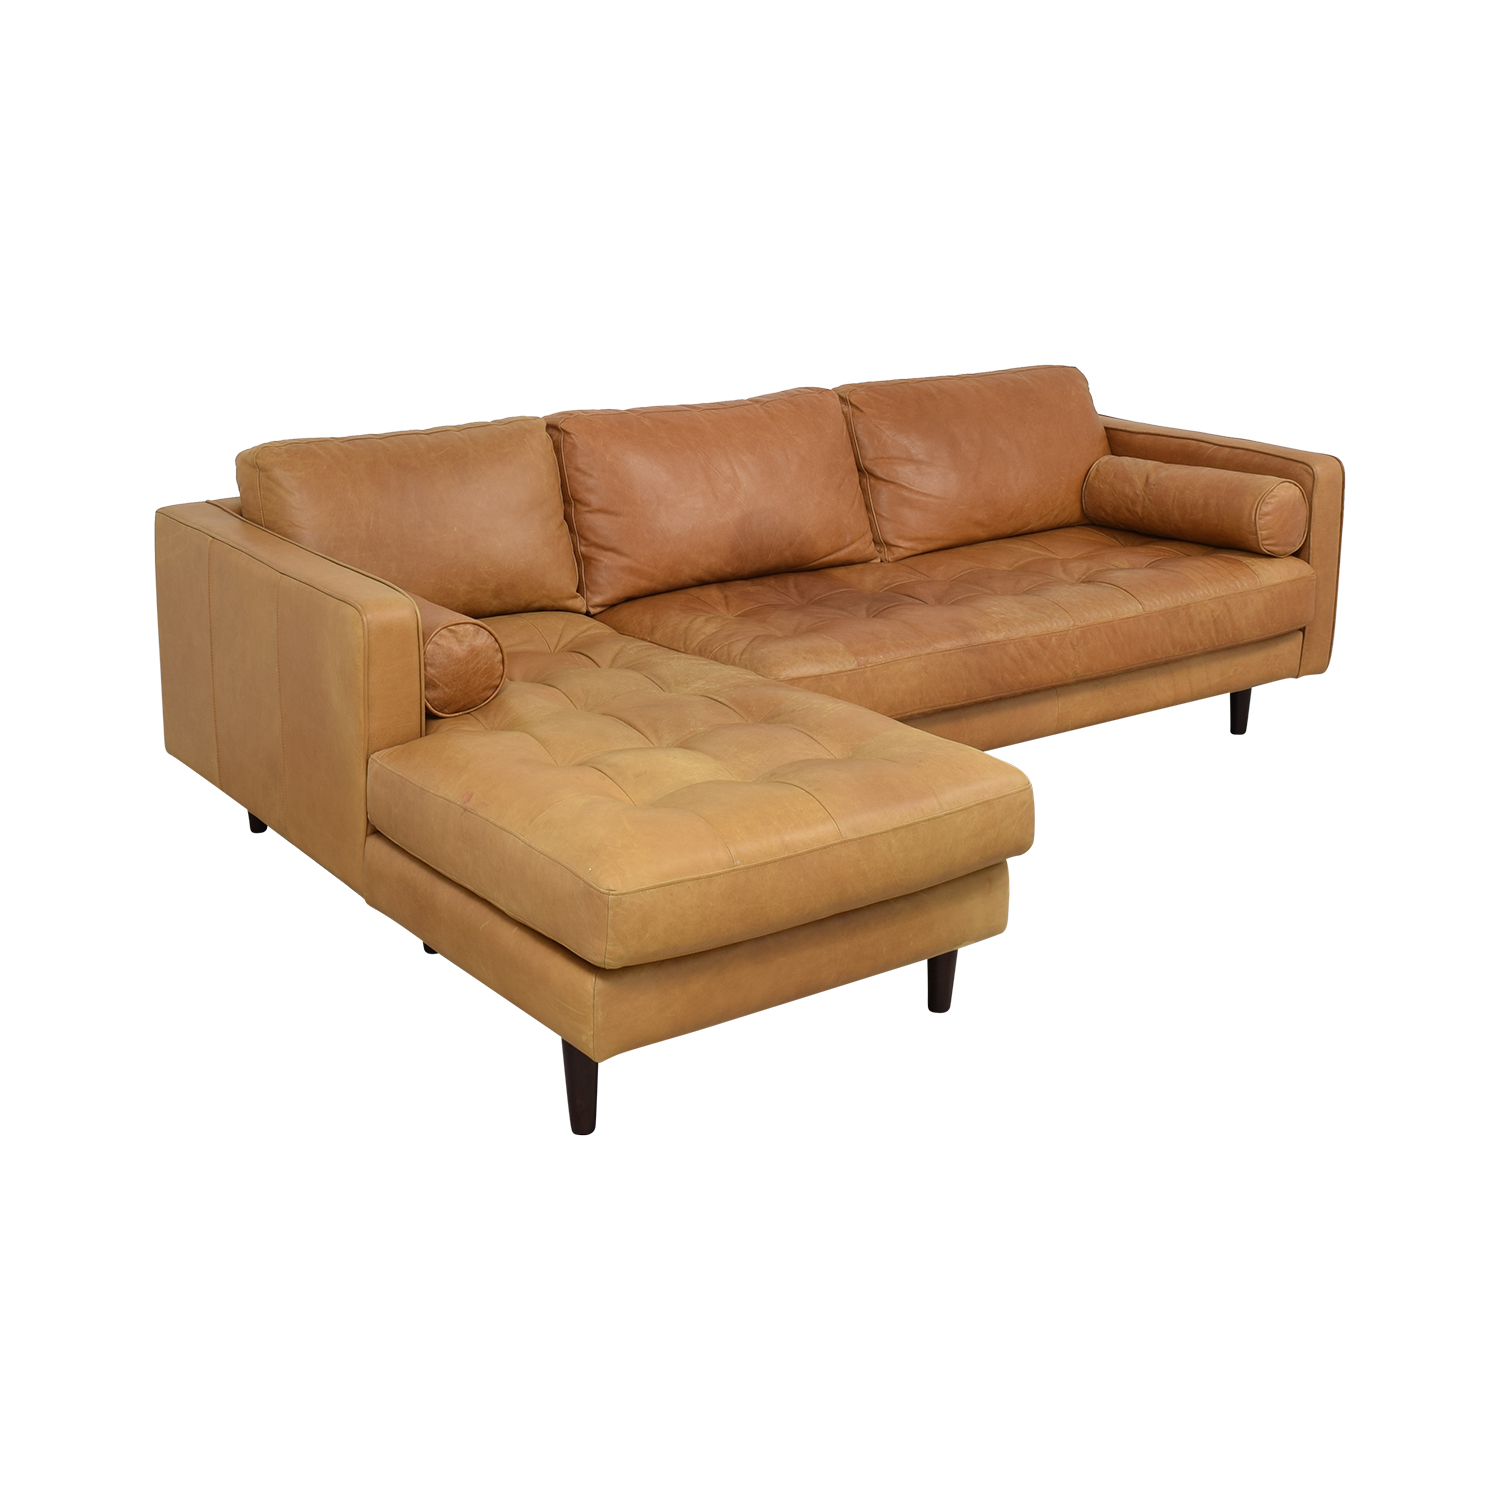 Article Article Sven Charme Sectional Sofa second hand